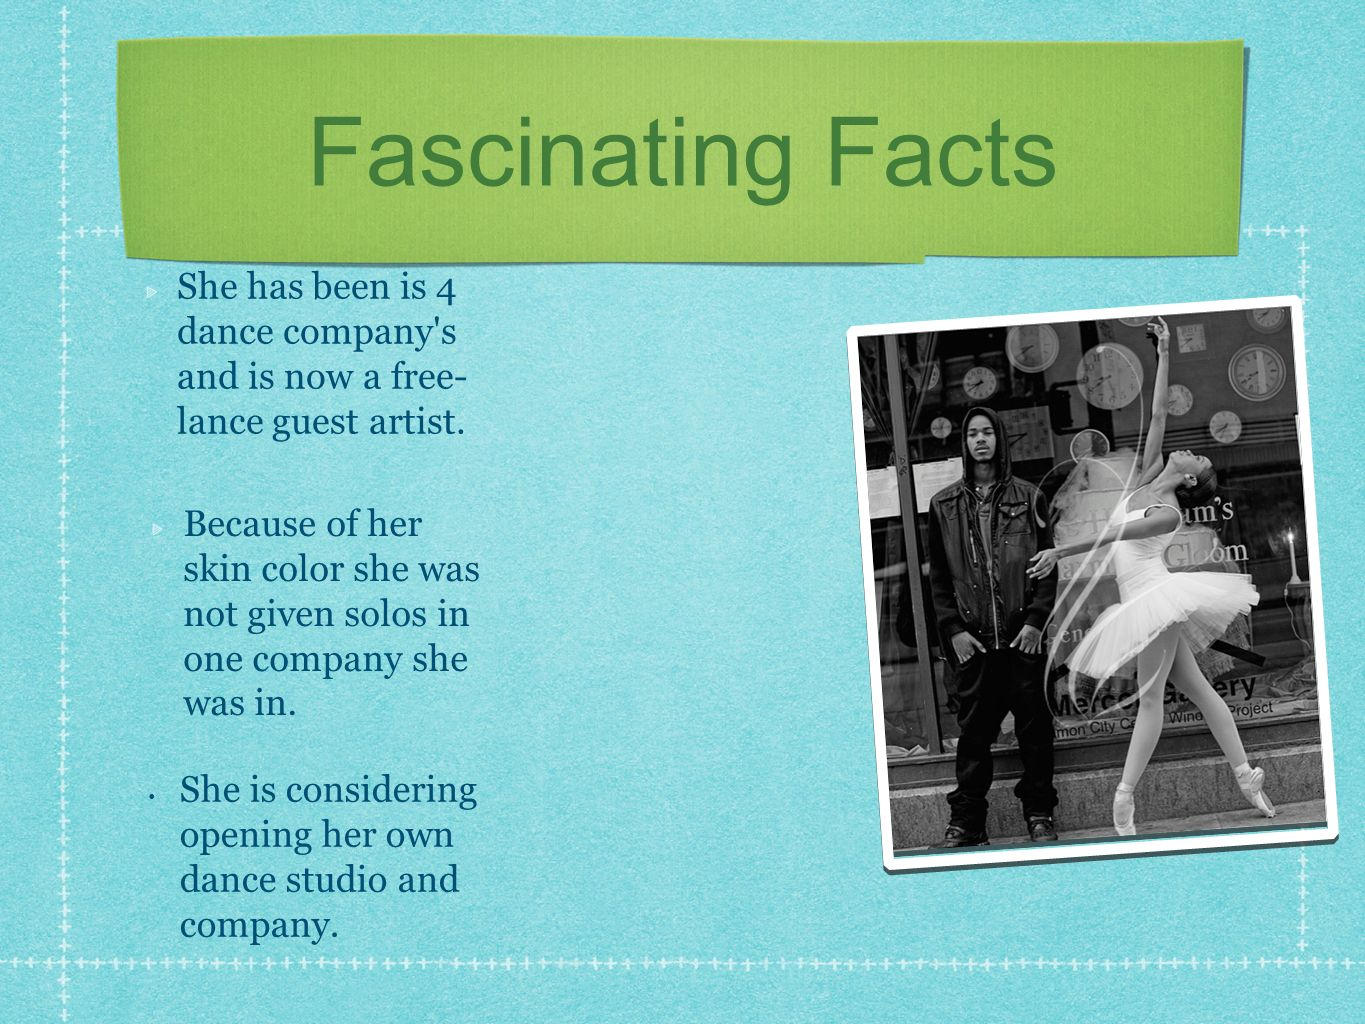 Fascinating Facts Because of her skin color she was not given solos in one company she was in. She has been is 4 dance company's and is now a free- la